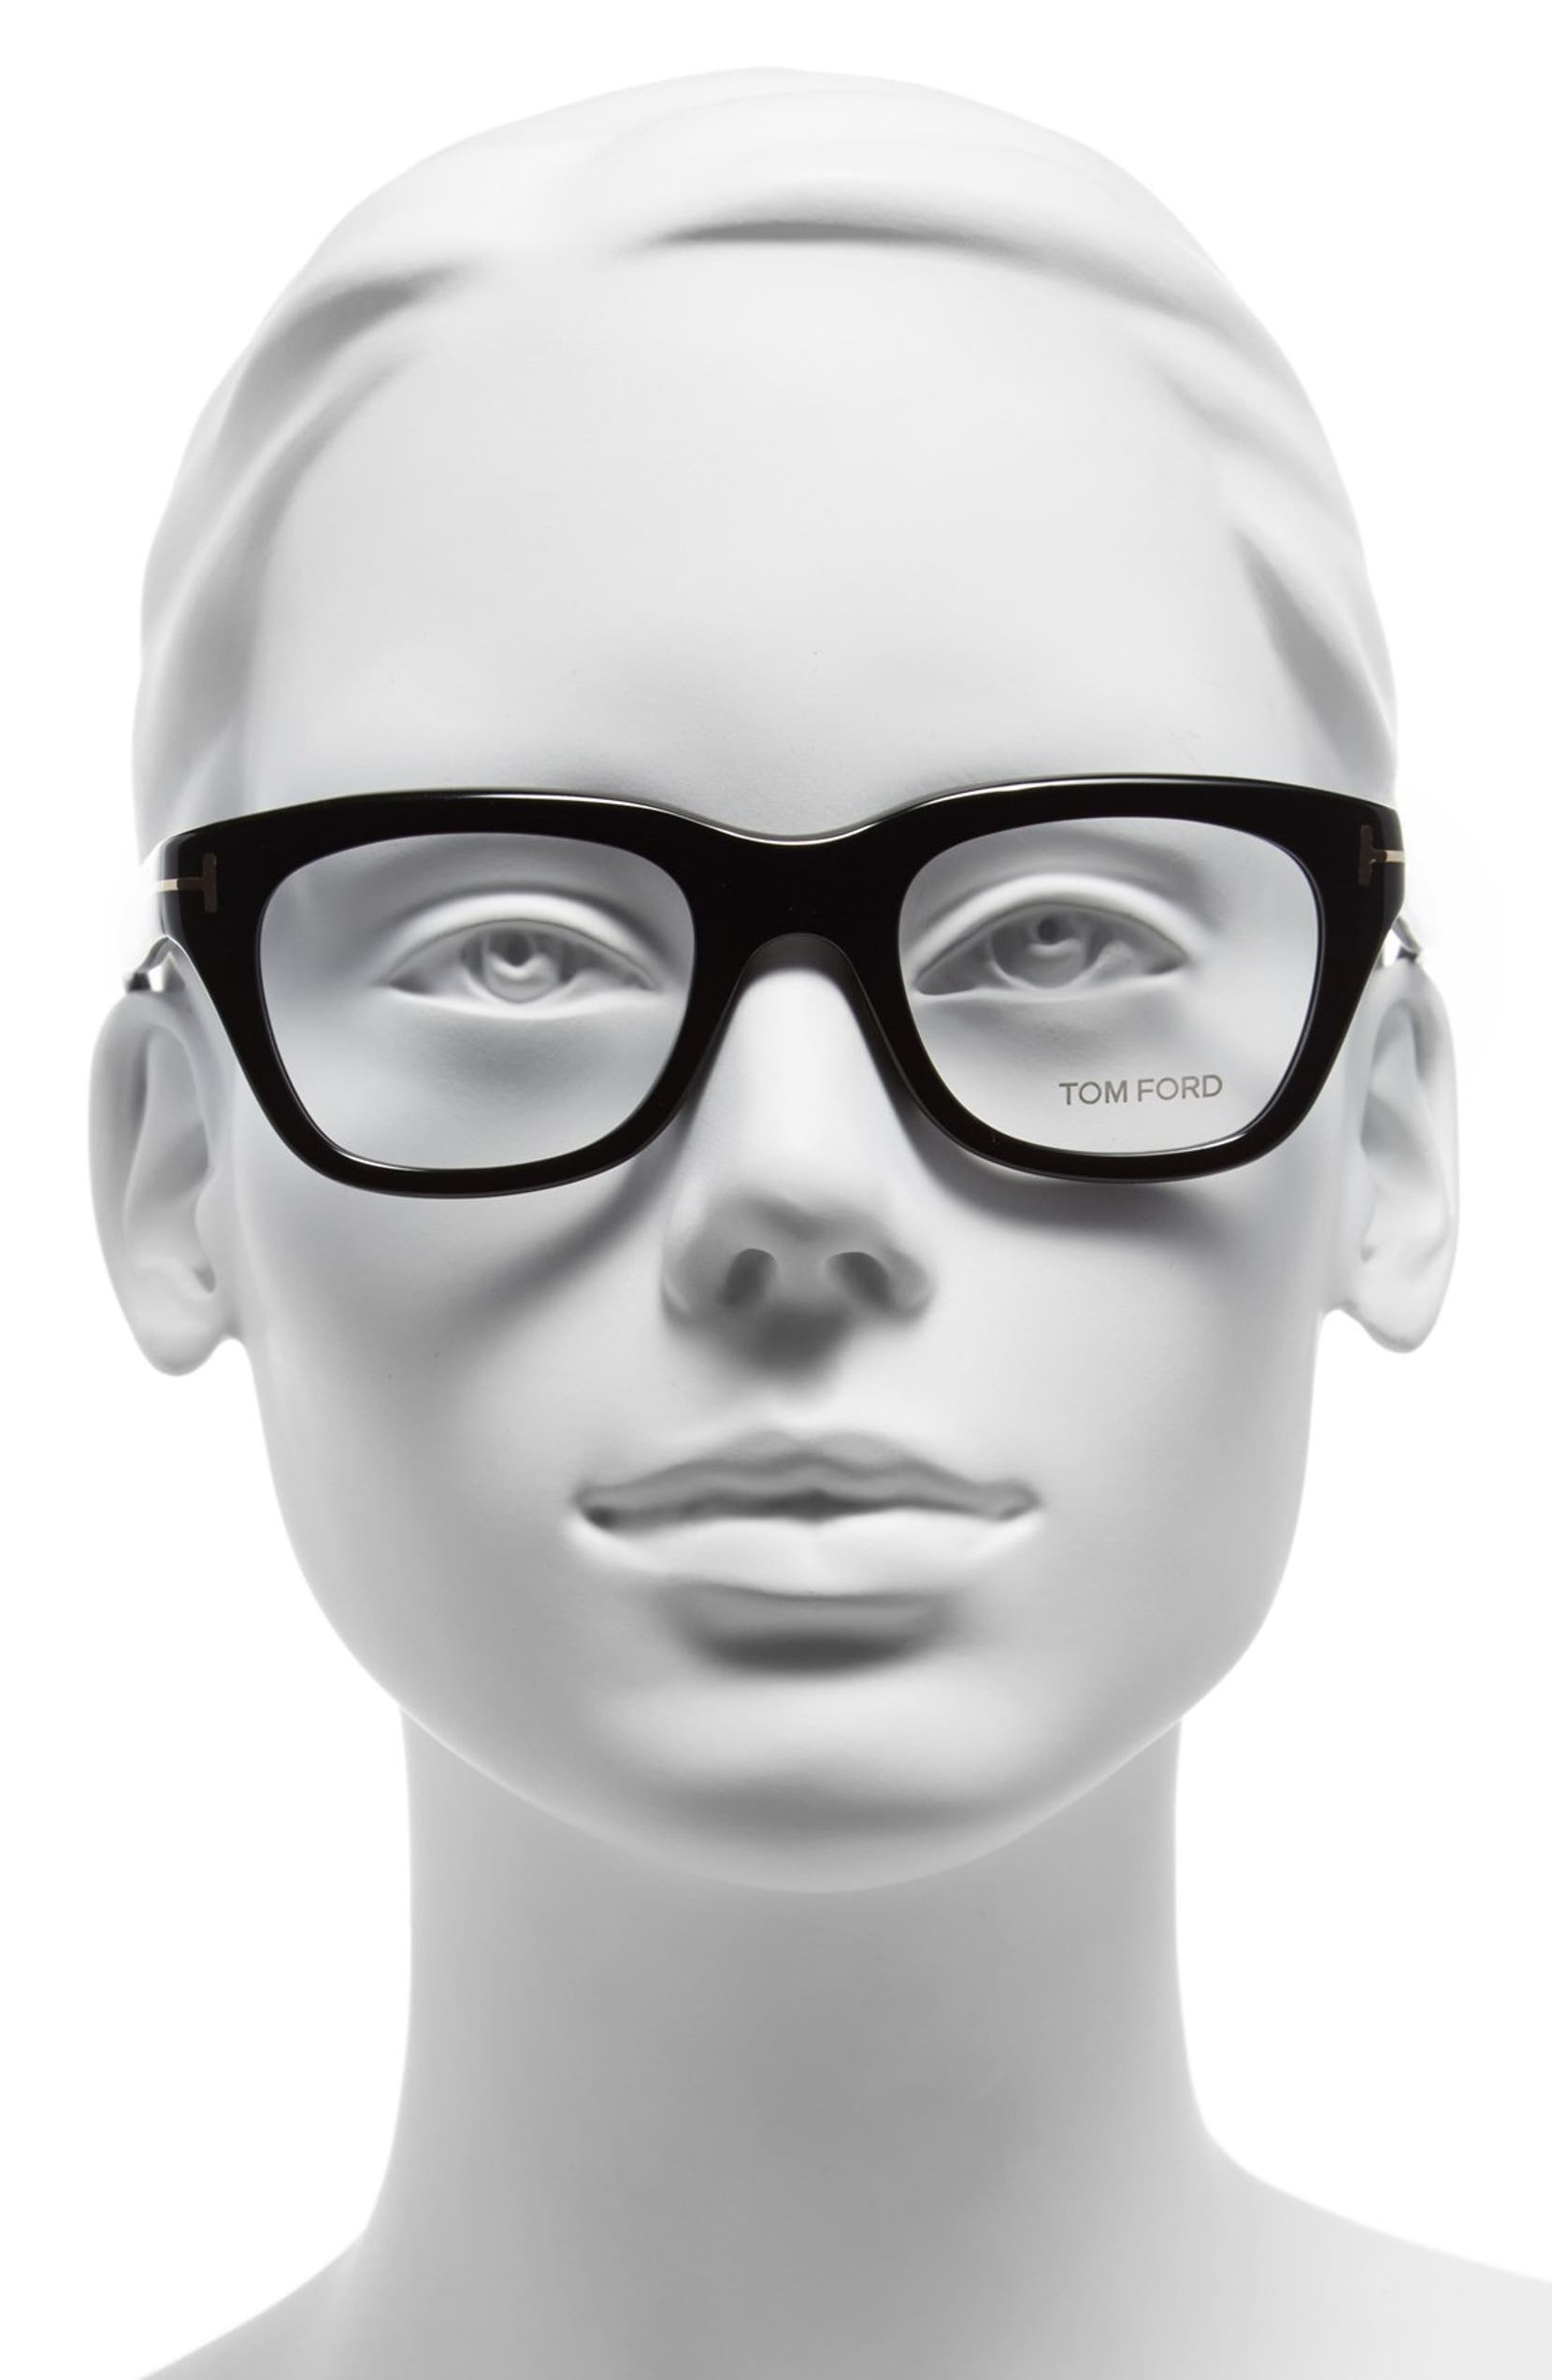 575460b3e55 Tom Ford 50mm Optical Glasses (Online Only)